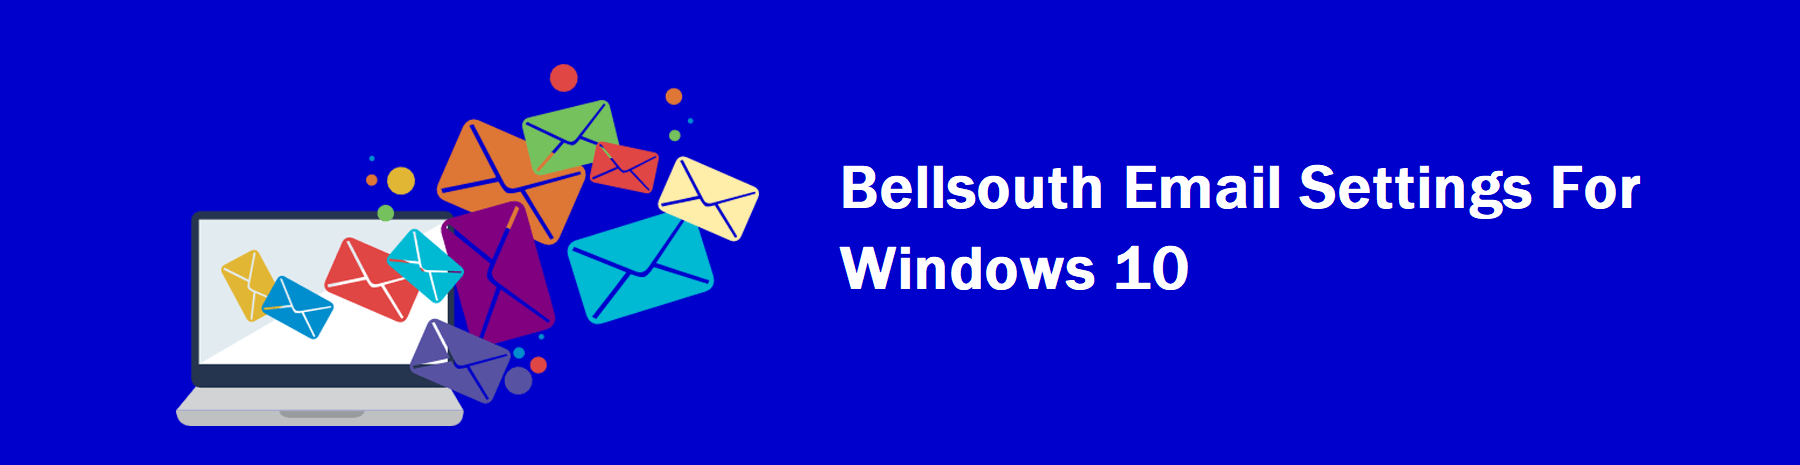 Bellsouth Email Settings Windows 10